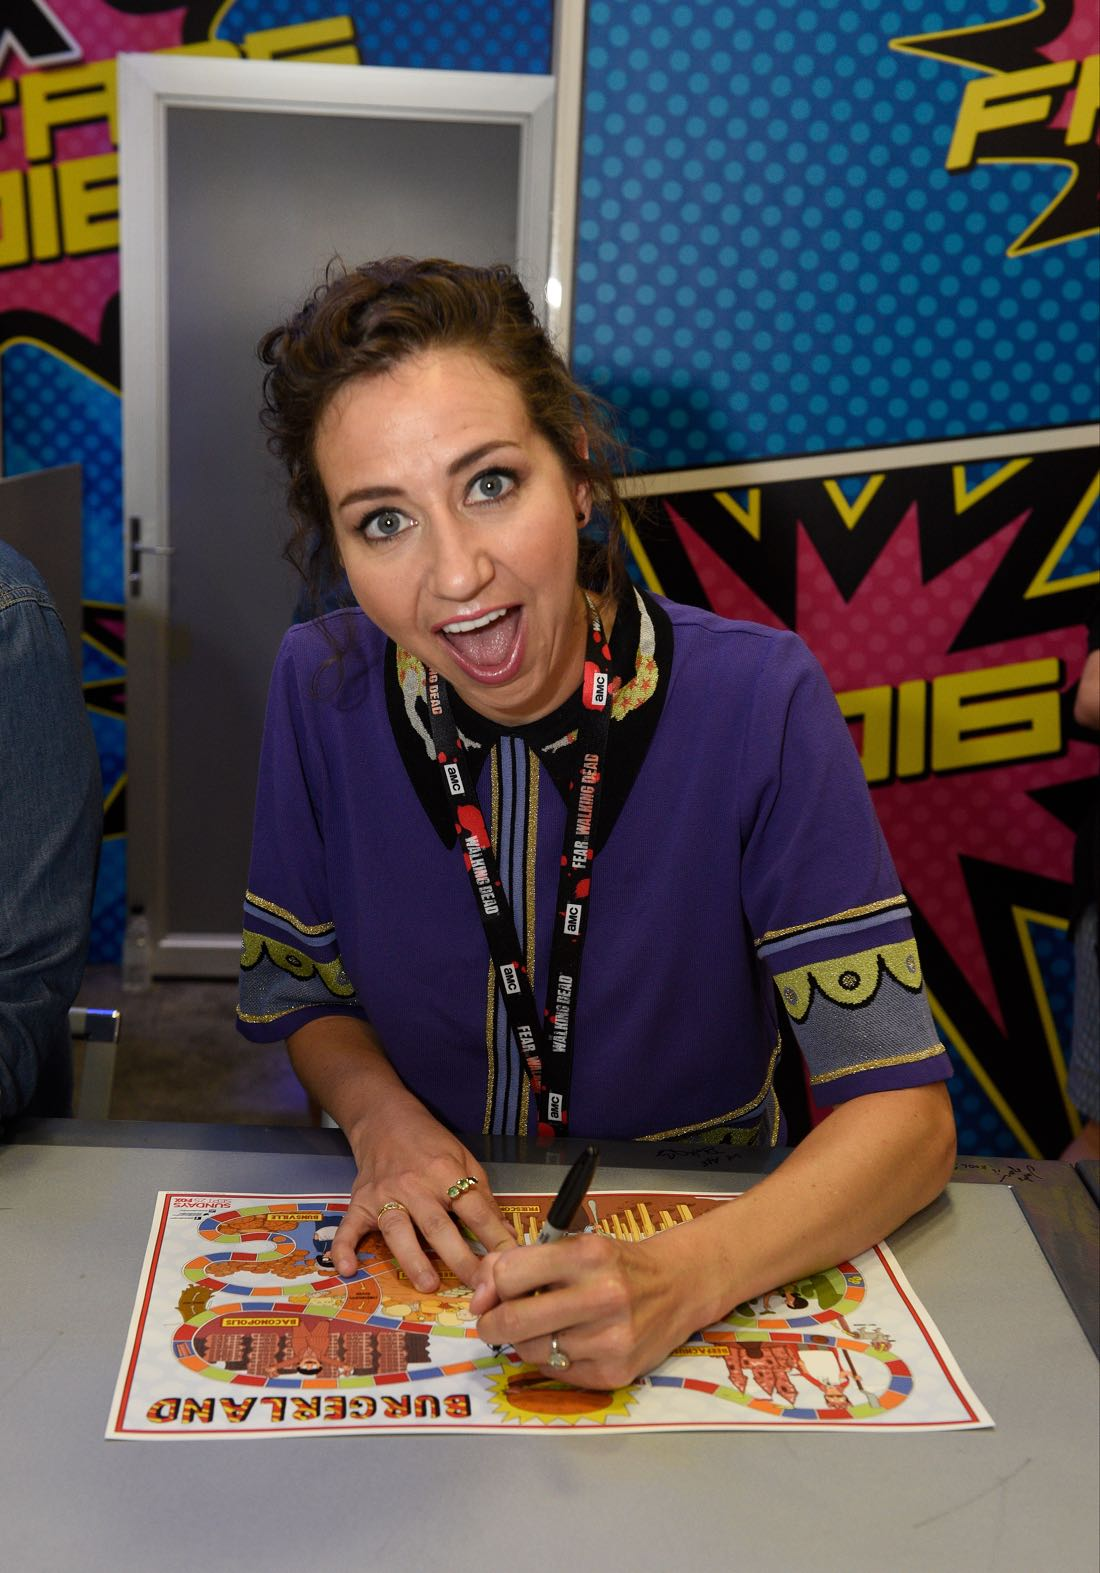 FOX FANFARE AT SAN DIEGO COMIC-CON © 2016: BOB'S BURGERS cast member Kristen Schaal during BOB'S BURGERS booth signing on Friday, July 22 at the FOX FANFARE AT SAN DIEGO COMIC-CON © 2016. CR: Alan Hess/FOX © 2016 FOX BROADCASTING